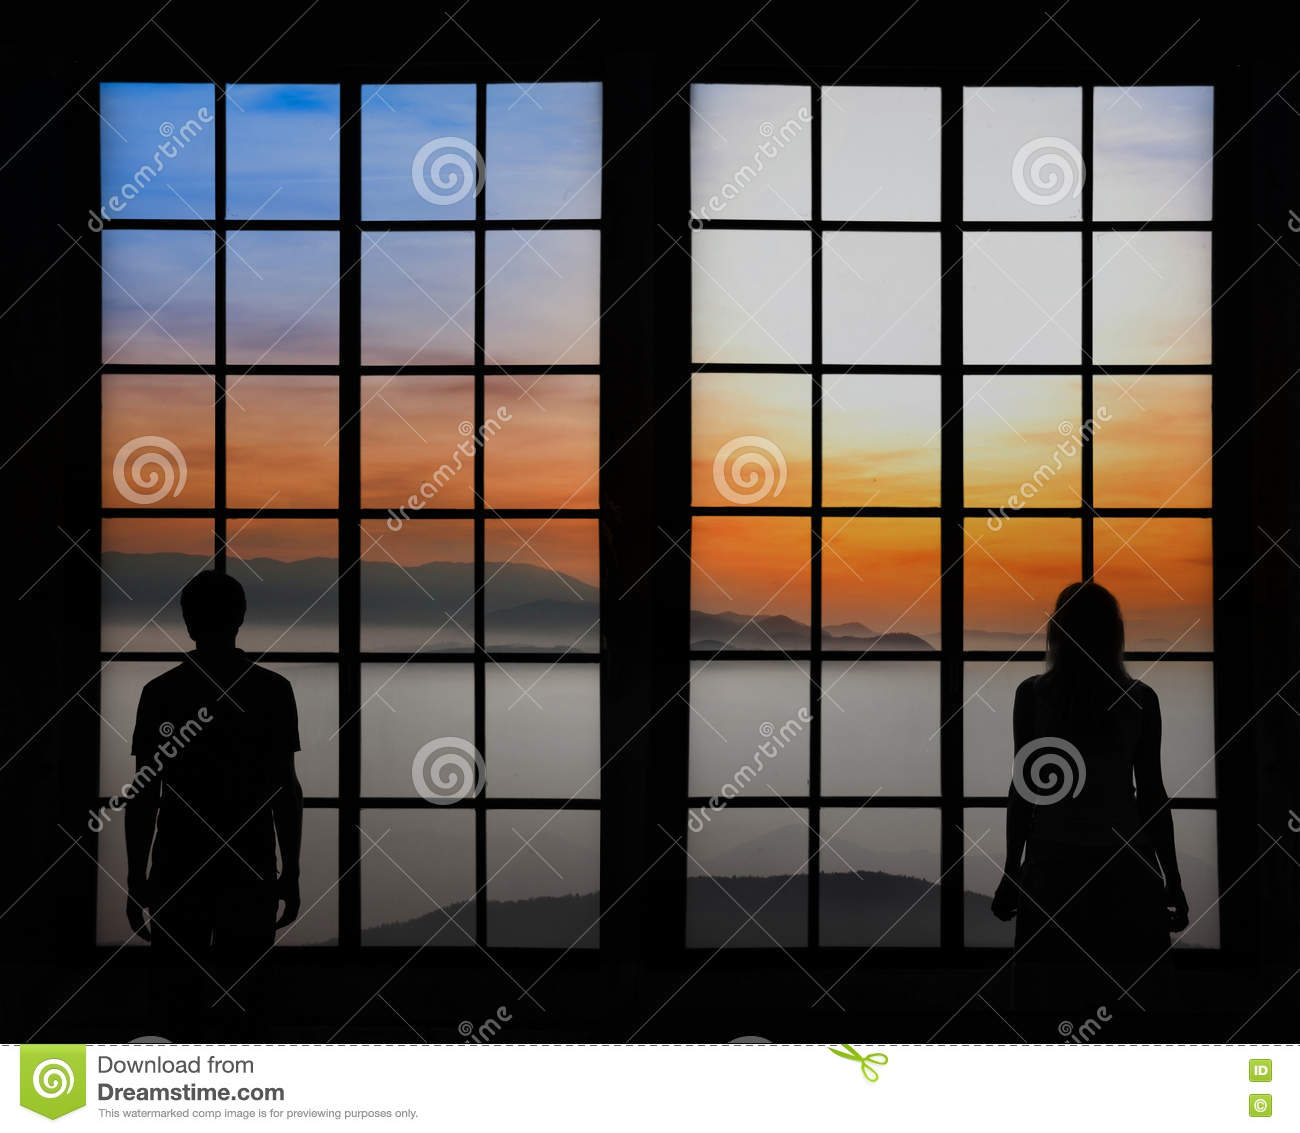 Silhouette of a couple looking through window